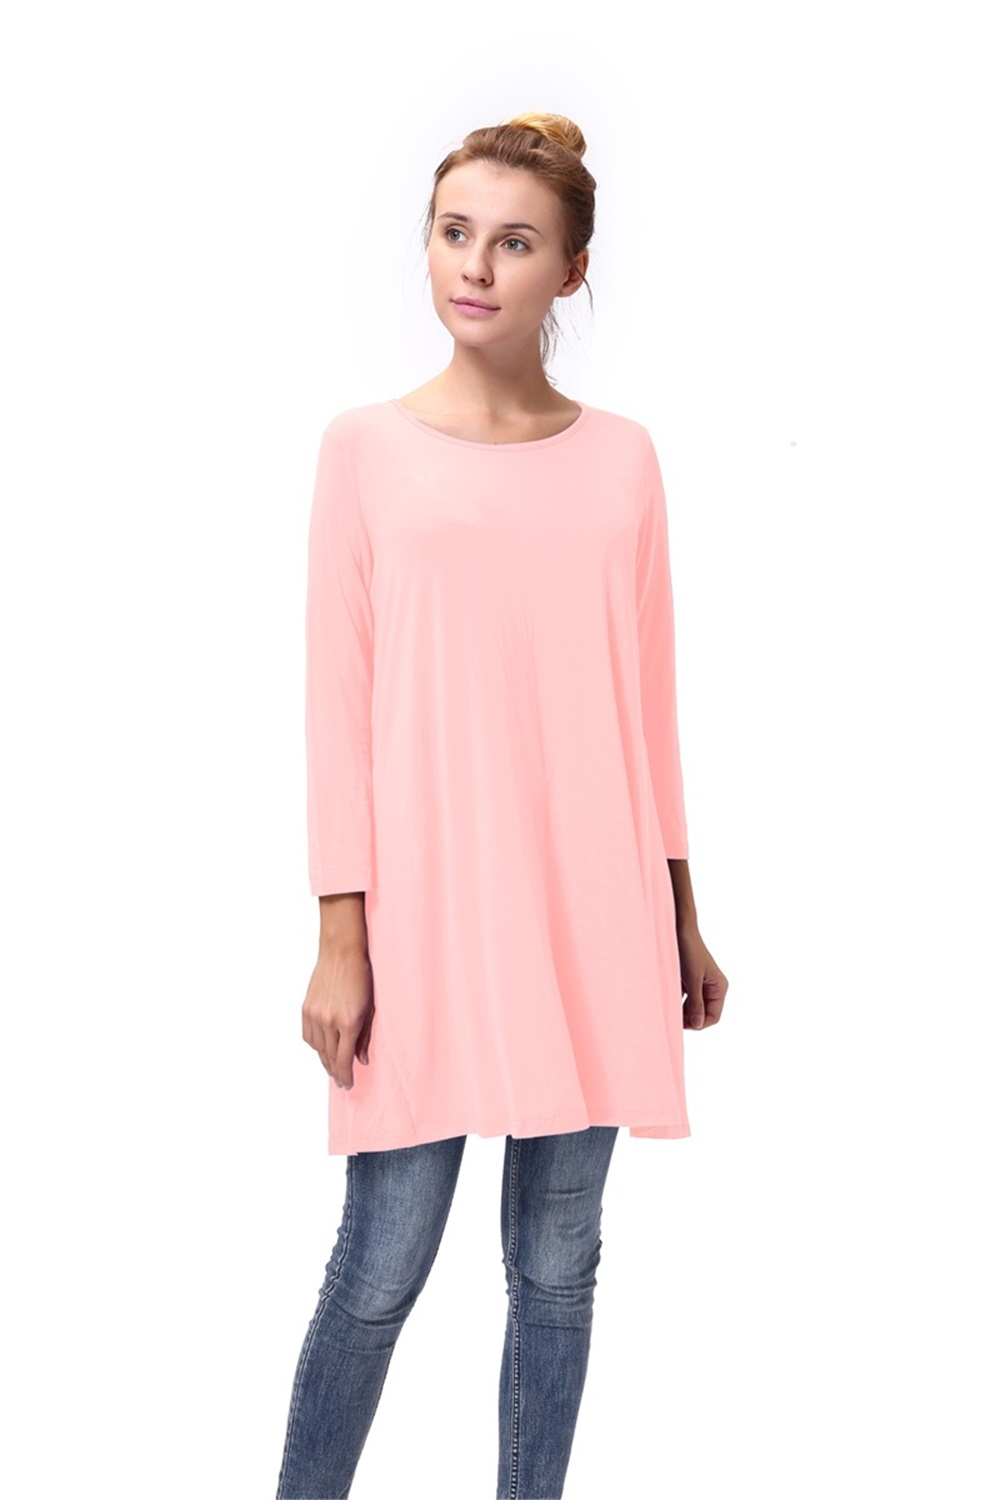 Women-Casual-Round-Neck-3-4-Long-Sleeve-Trapeze-Tunic-Top-Lady-Loose-Fit-Dress thumbnail 39